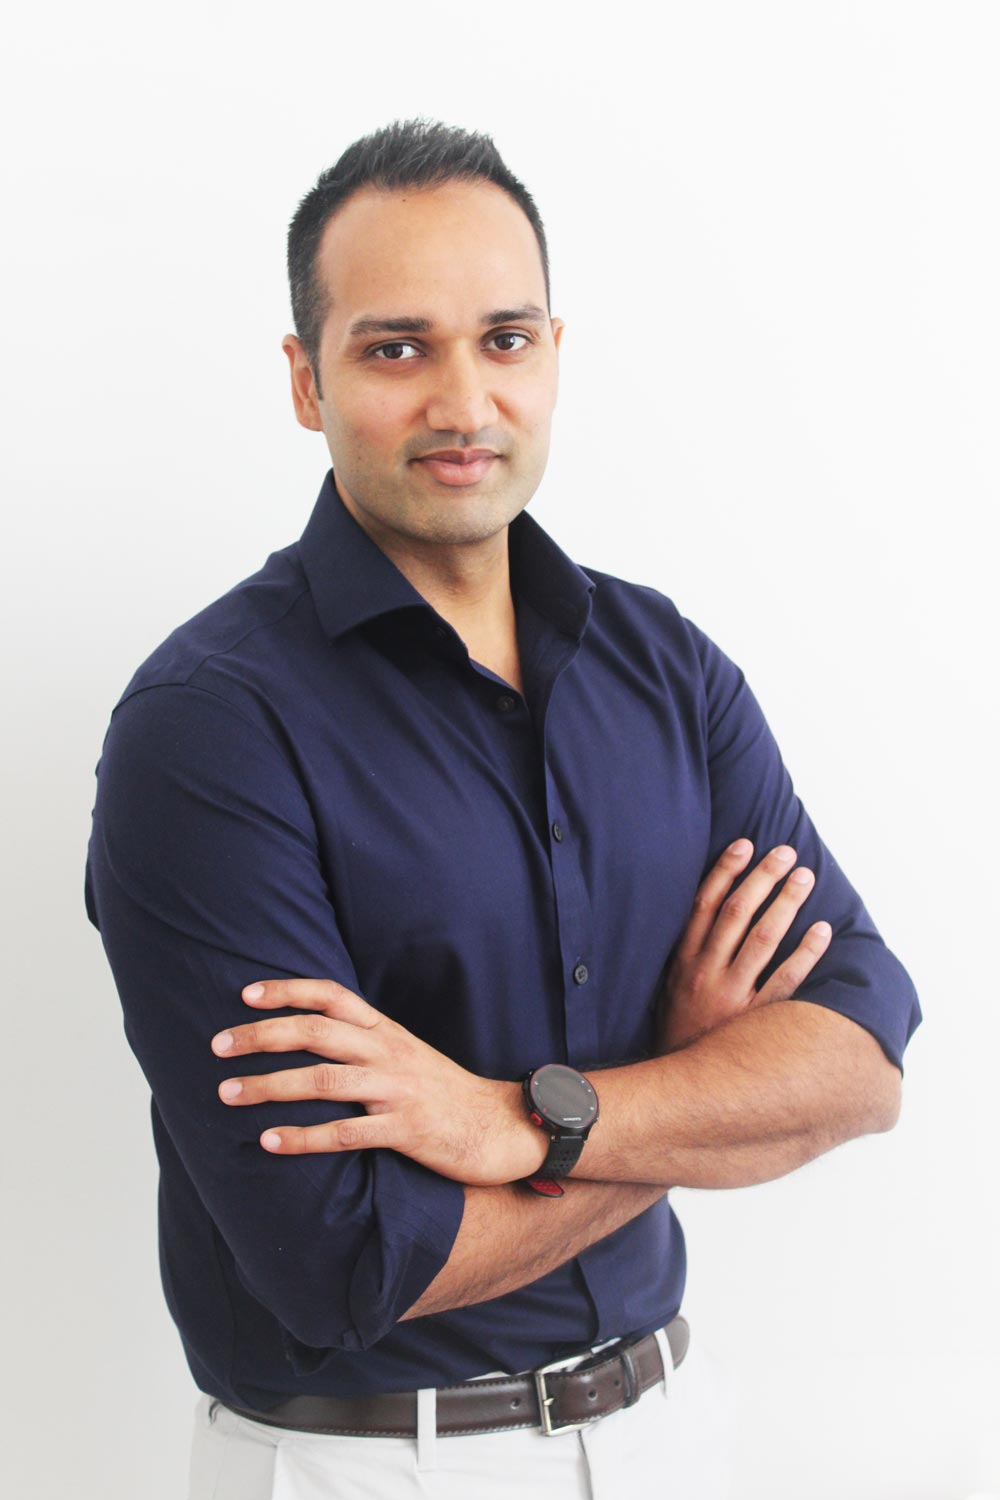 Kalpesh Parekh - Neo Therapy- Sports Massage & Physiotherapy in Harley Street Kalpesh